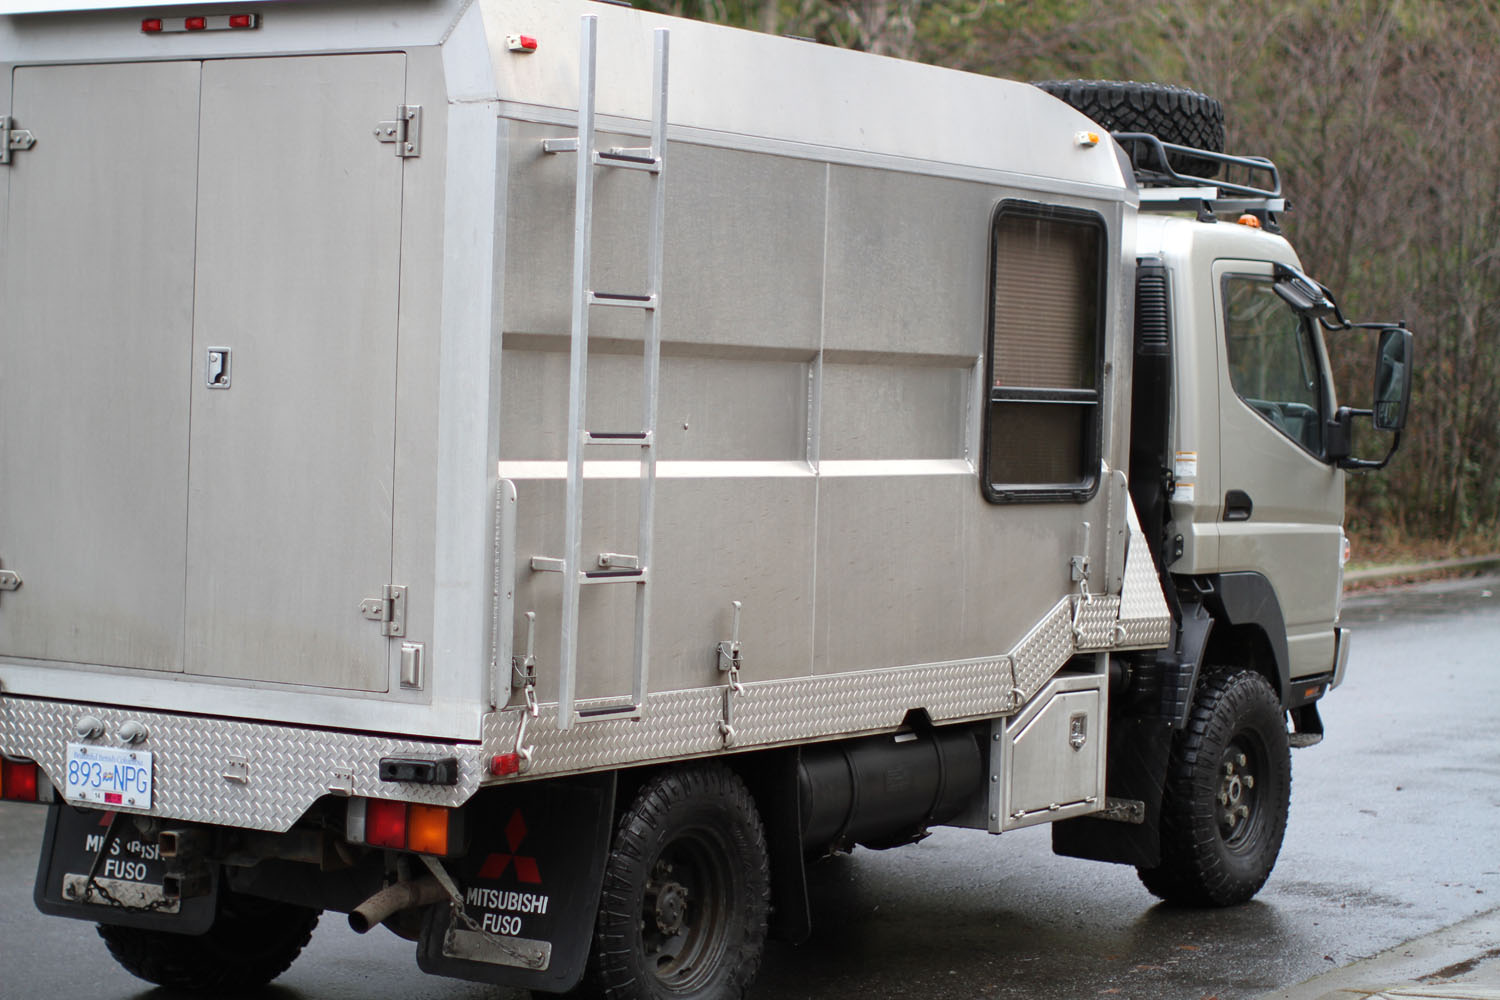 Unimog For Sale >> Live To Surf - The Original Tofino Surf Shop - Surfing ...